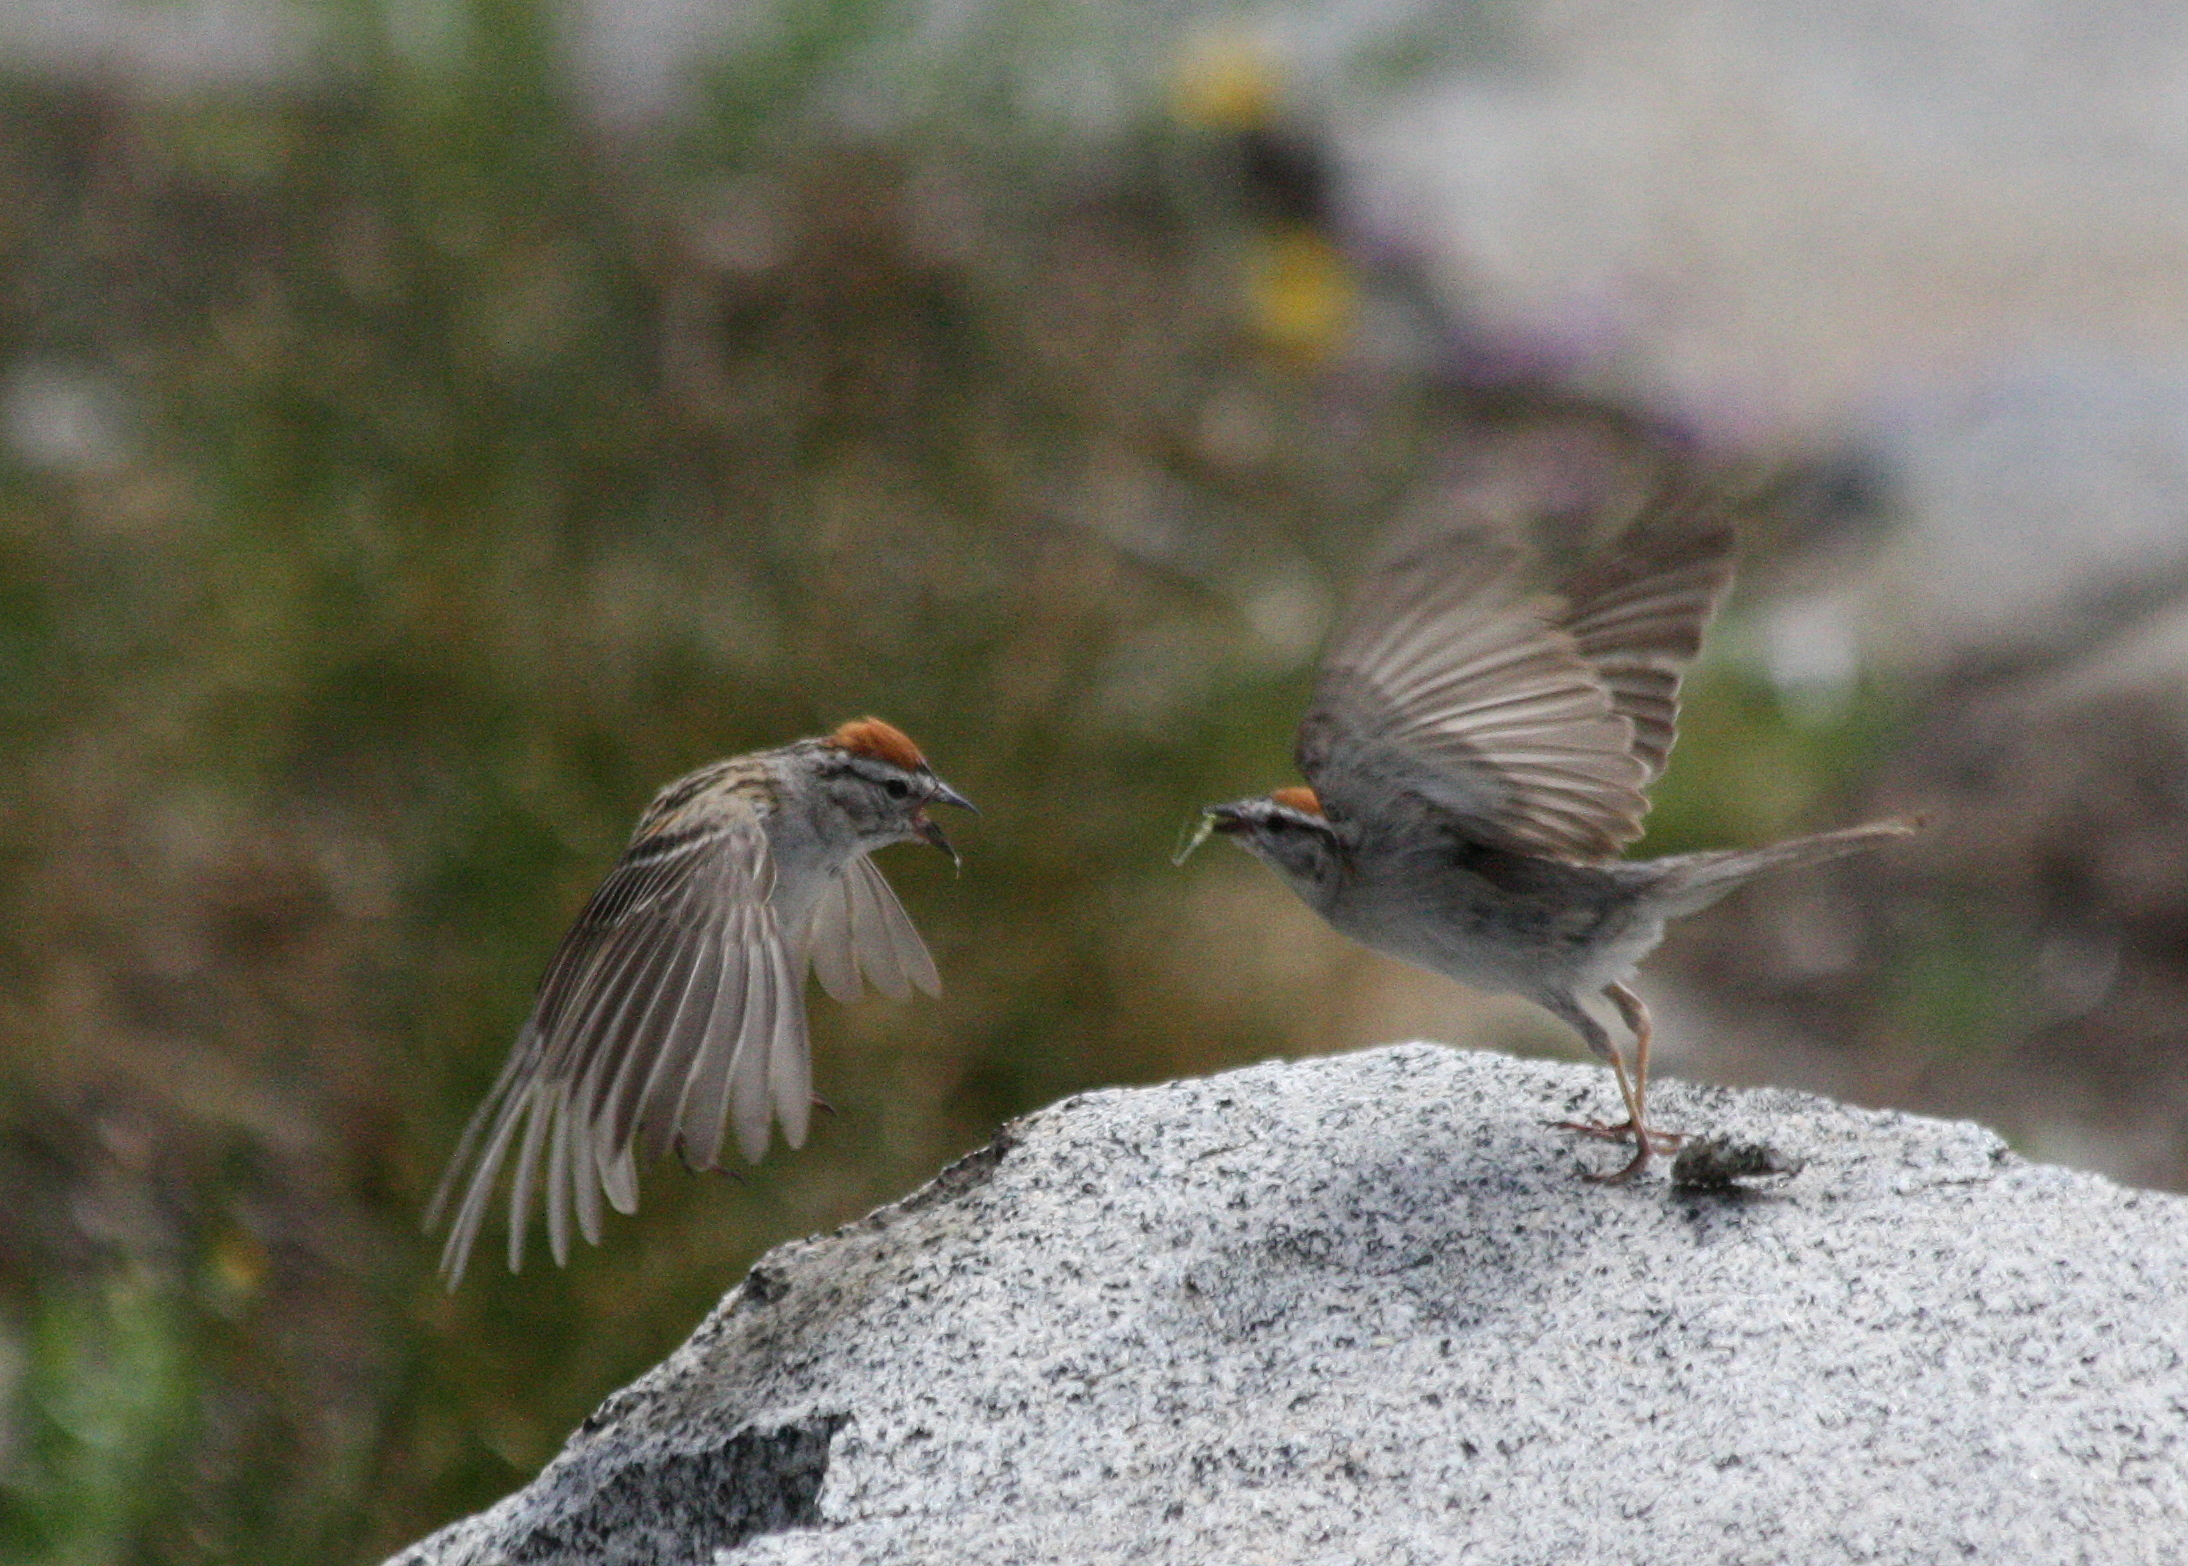 Photo: Chipping Sparrows